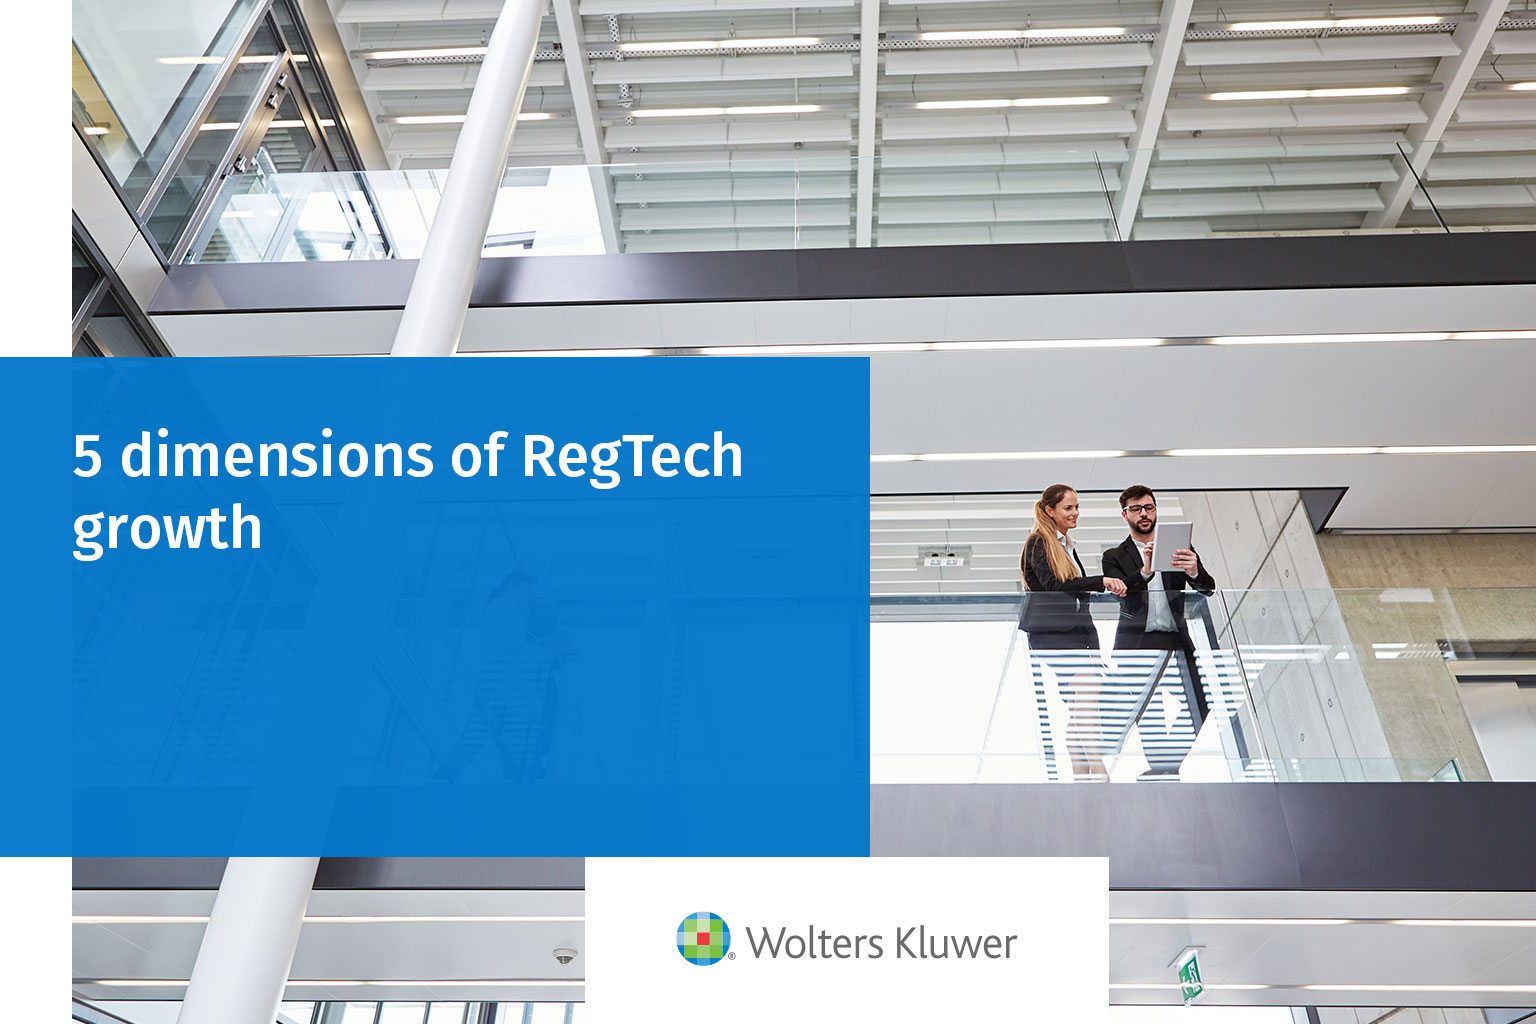 Five dimensions of RegTech growth